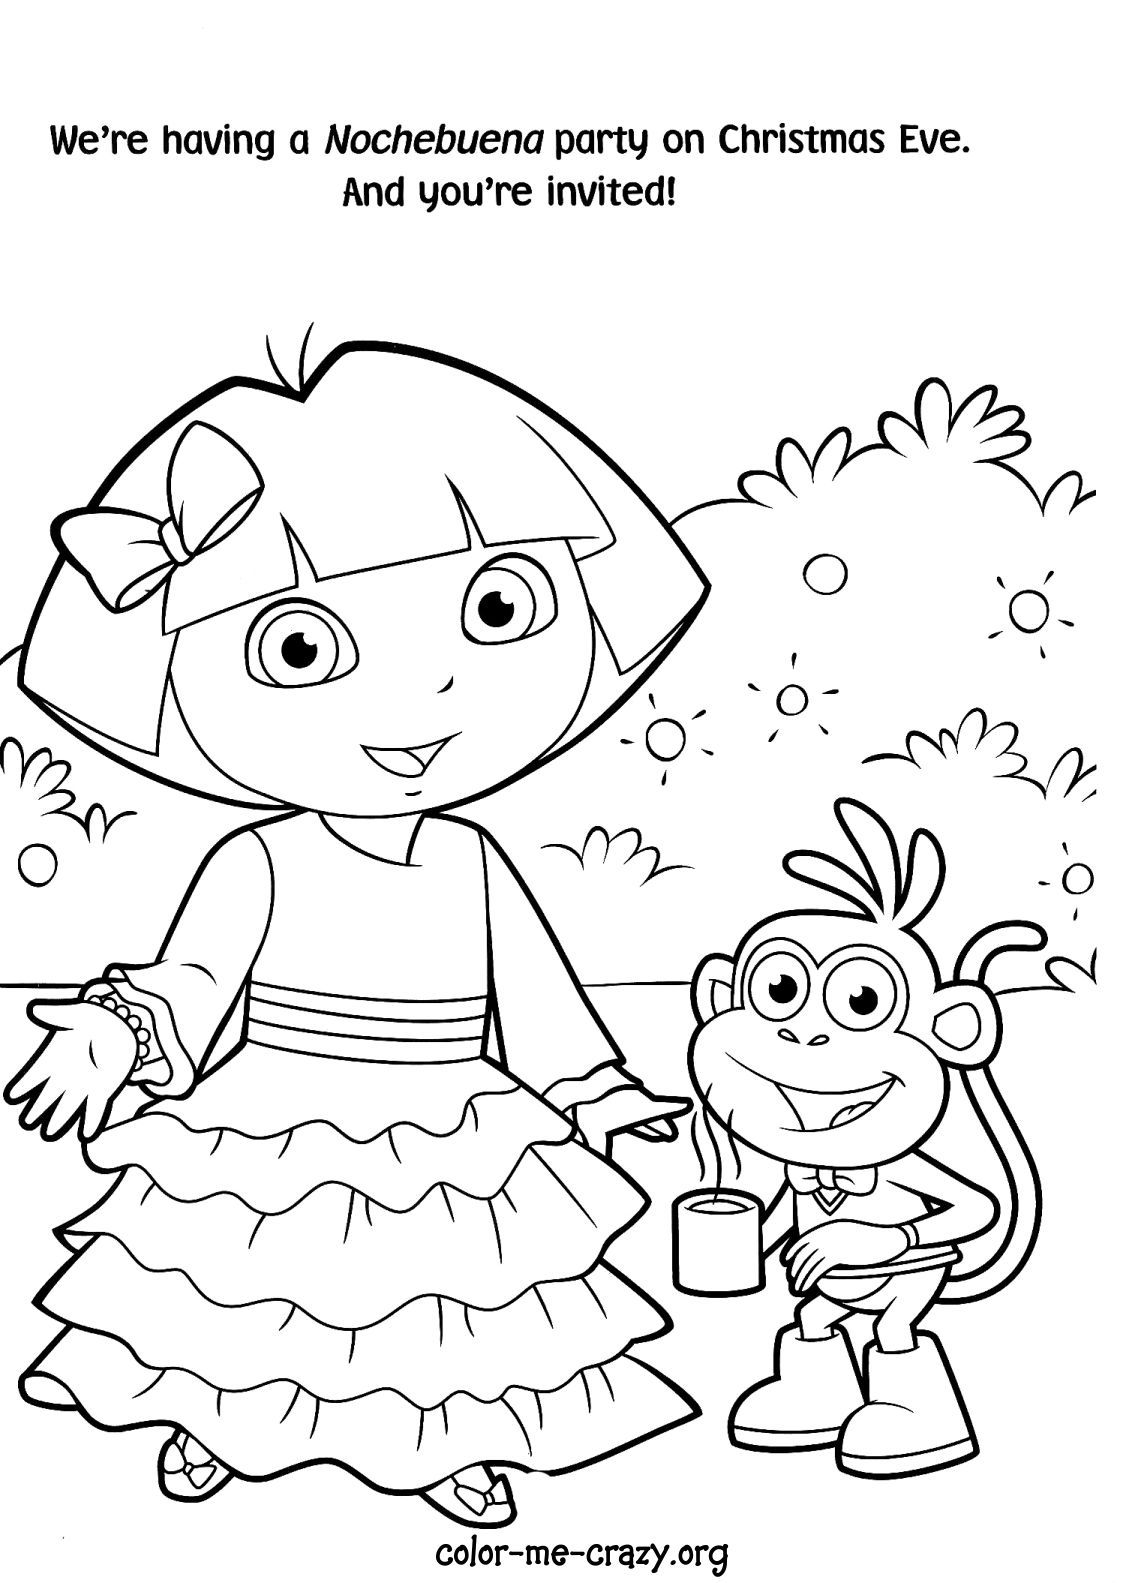 dora the explorer images to print dora color pages to print coloring home jeffersonclan dora to images explorer print the